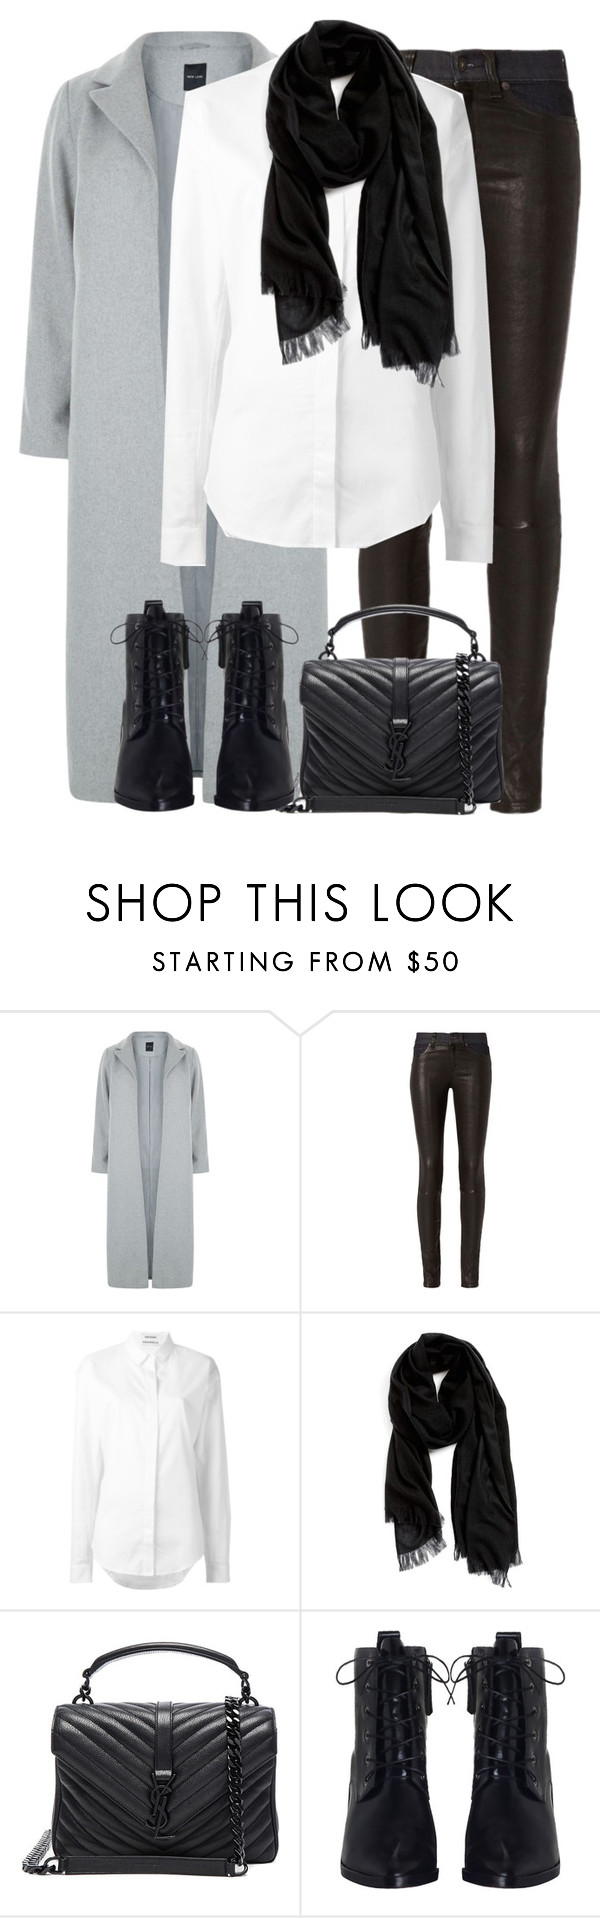 """""""Untitled #2928"""" by elenaday ❤ liked on Polyvore featuring New Look, rag & bone, Anthony Vaccarello, Nordstrom, Yves Saint Laurent and Zimmermann"""